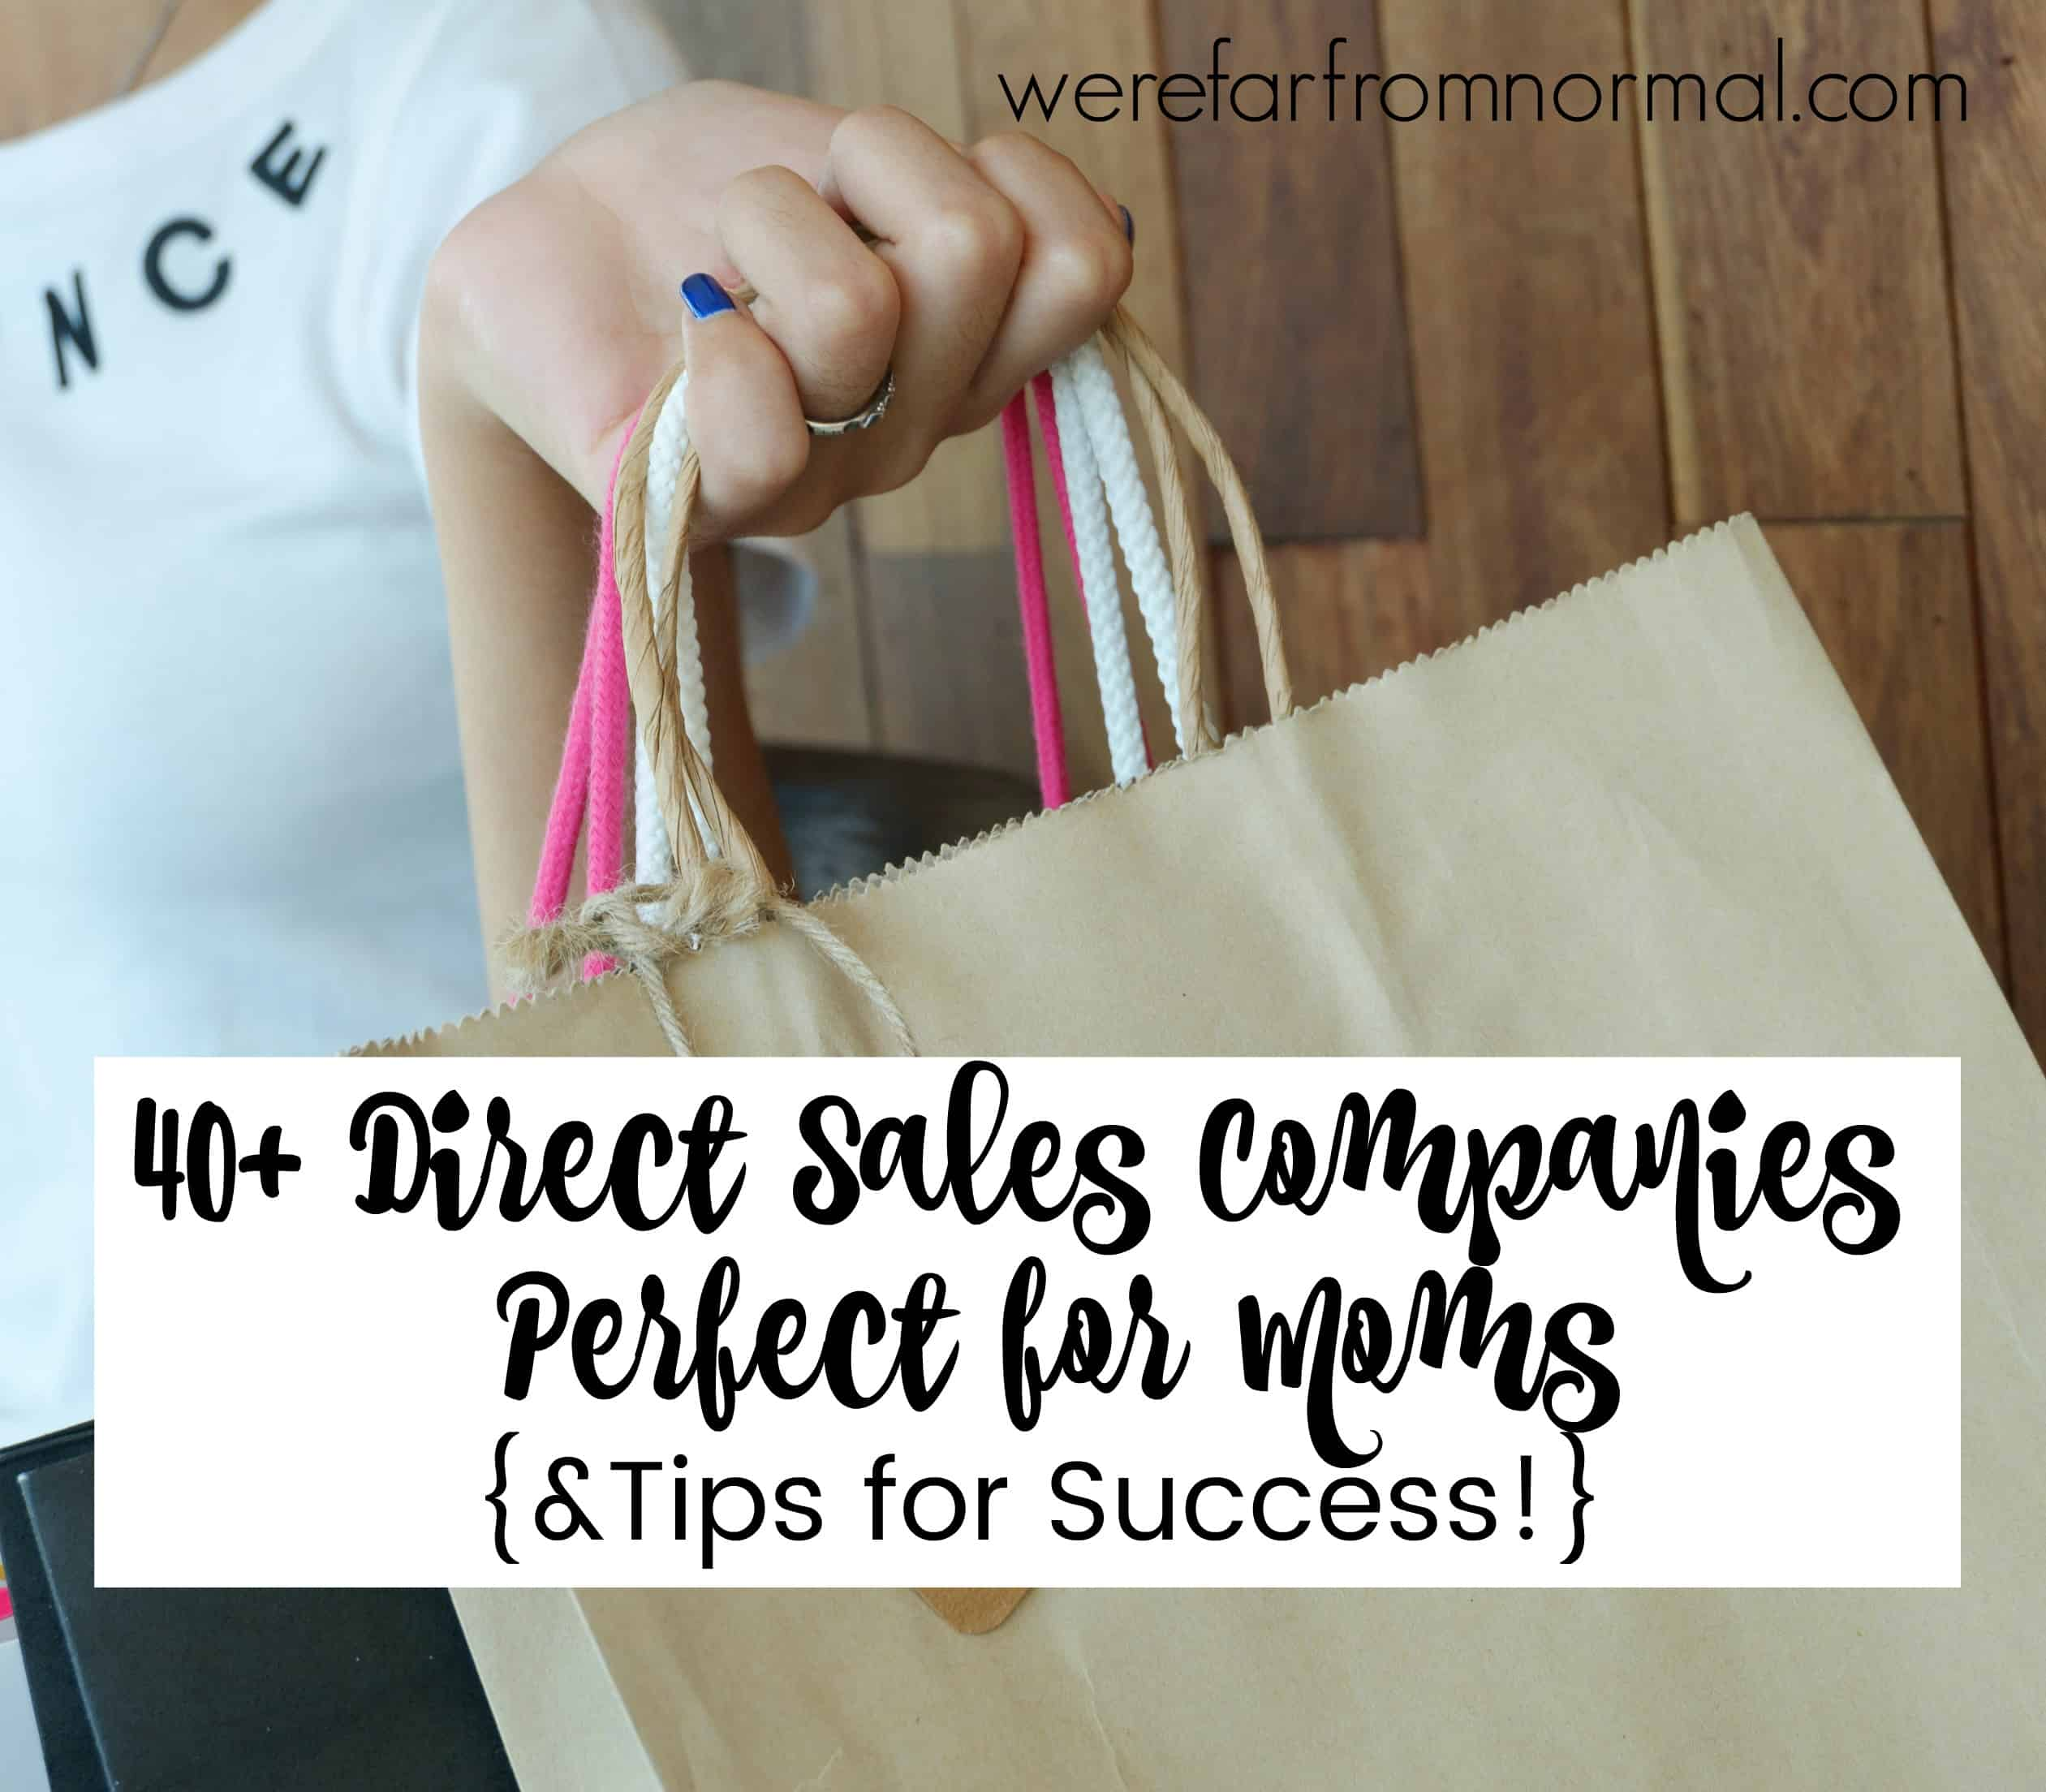 40+ Direct Sales Companies Perfect for Moms! {& Tips for Success!}